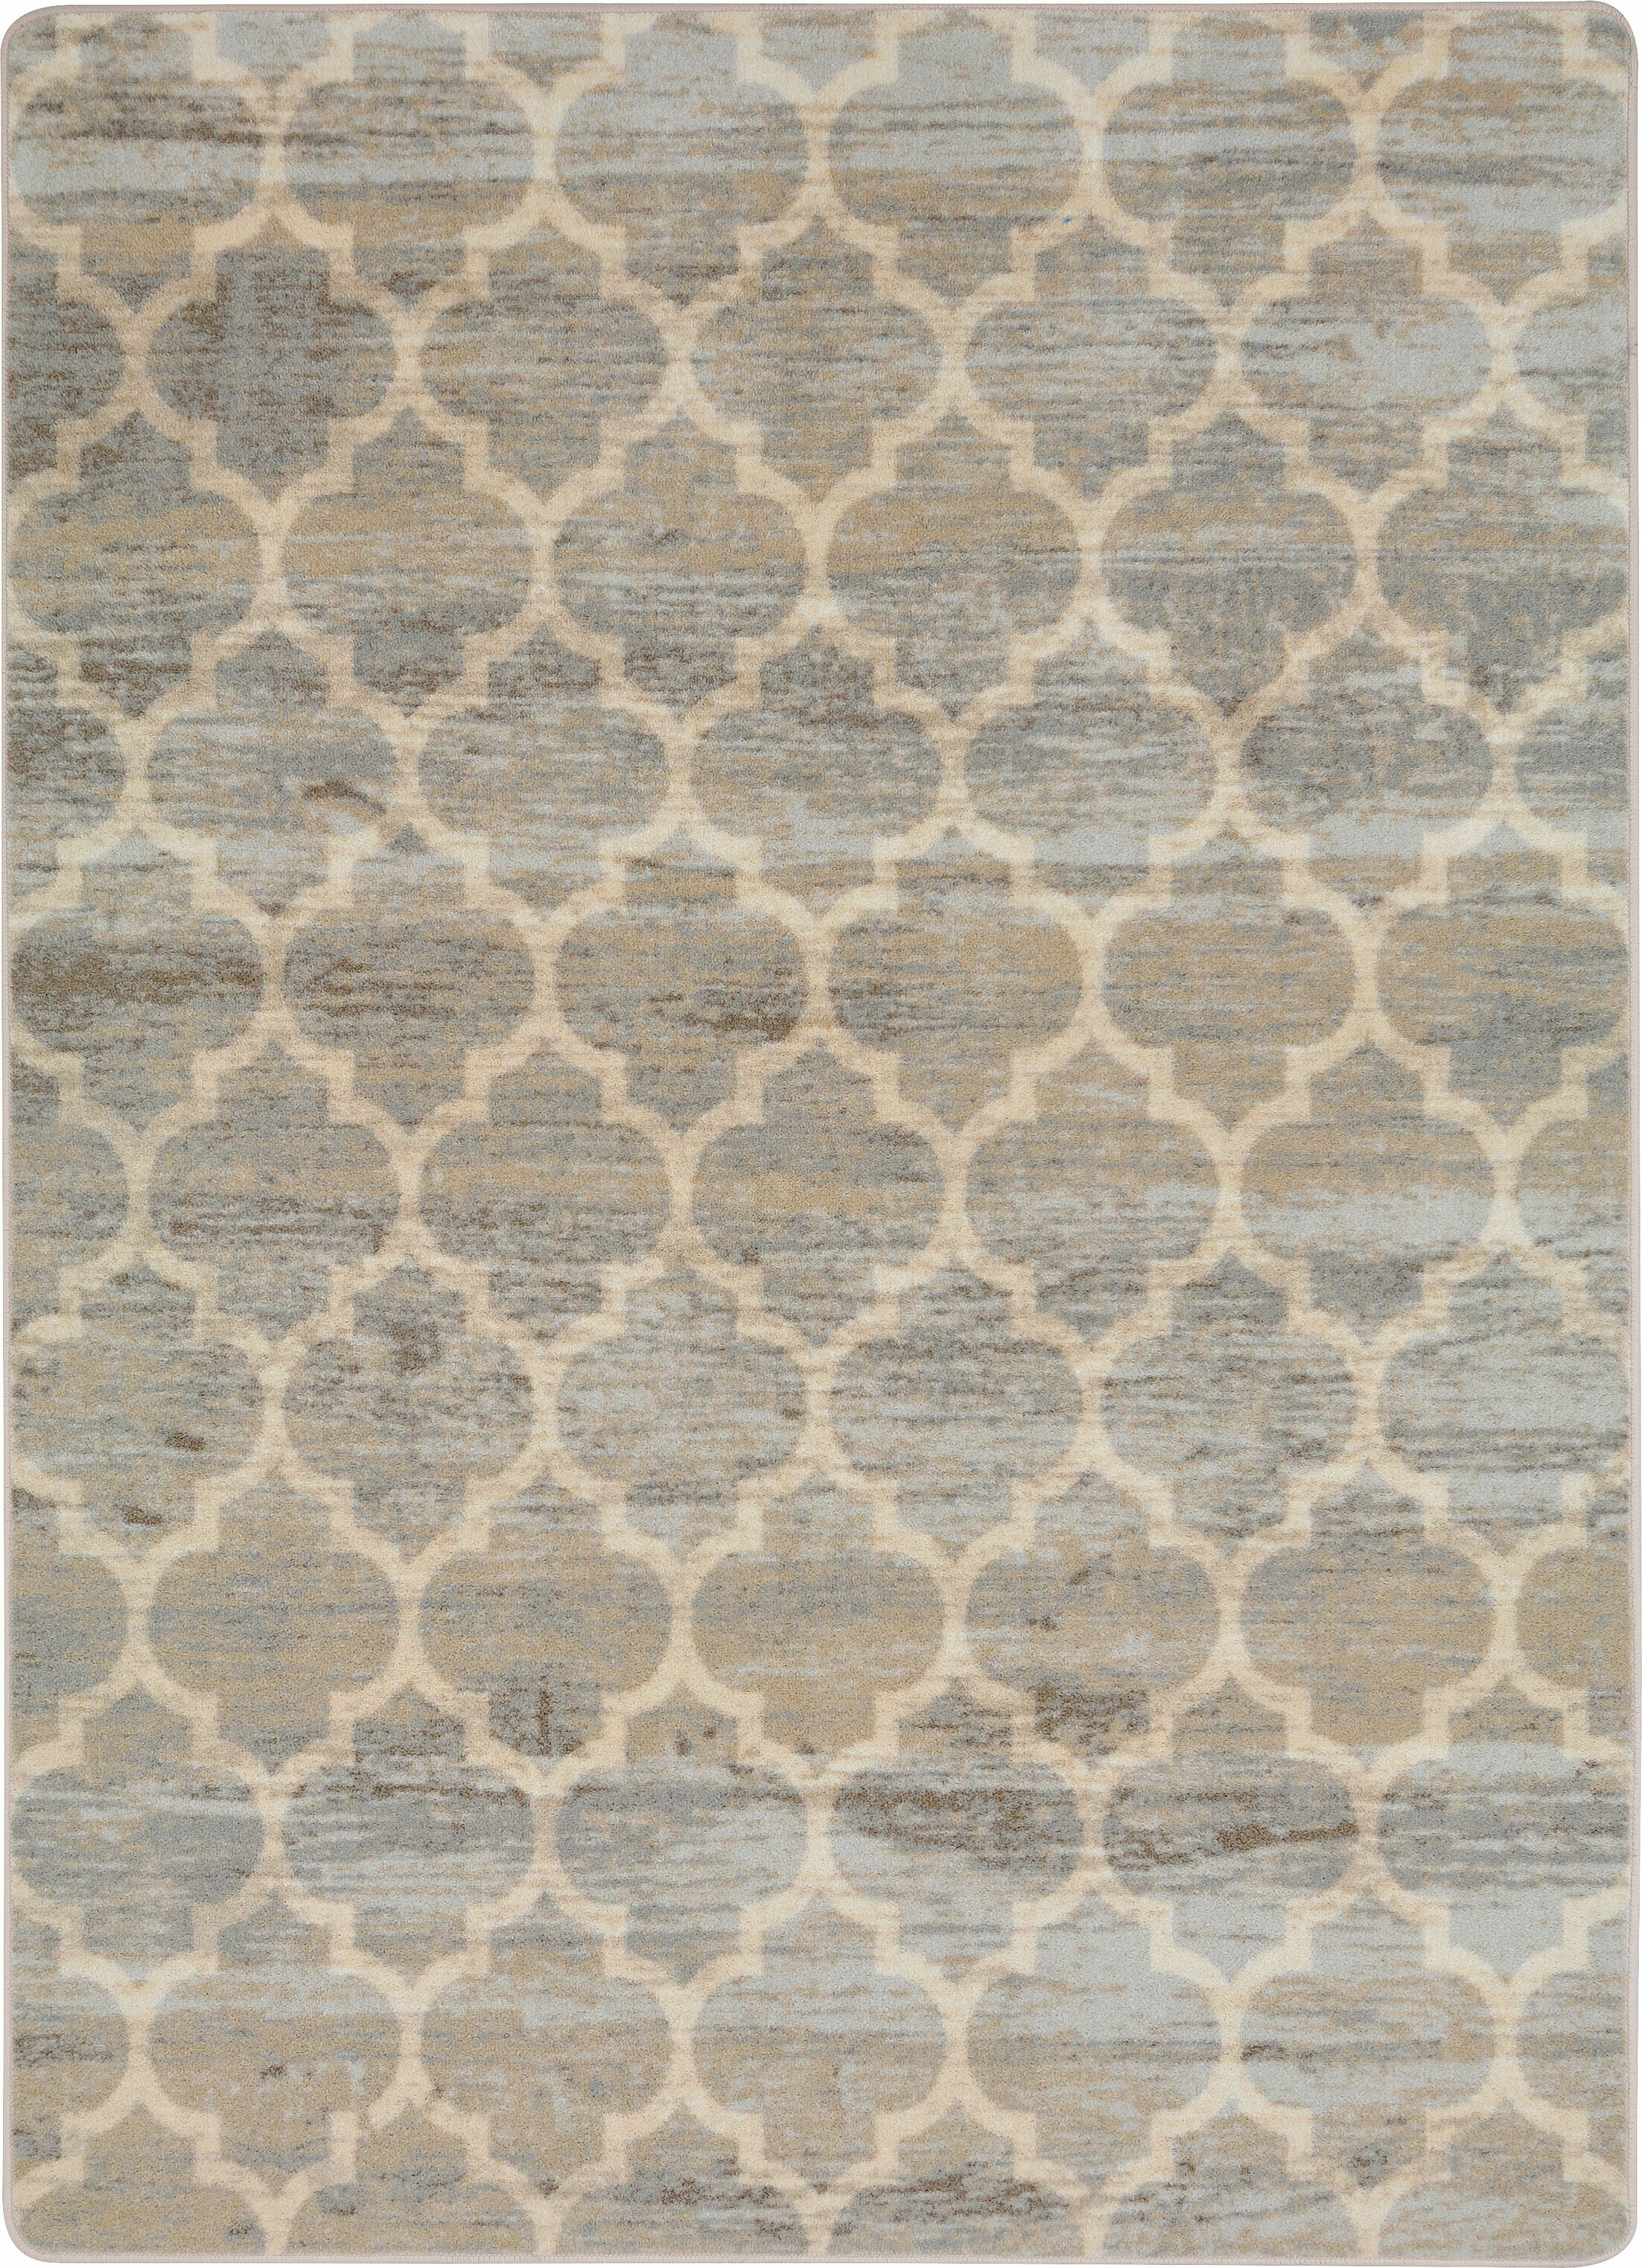 Roxie Synthetic Gray/Beige Area Rug Rug Size: Rectangle 5'4